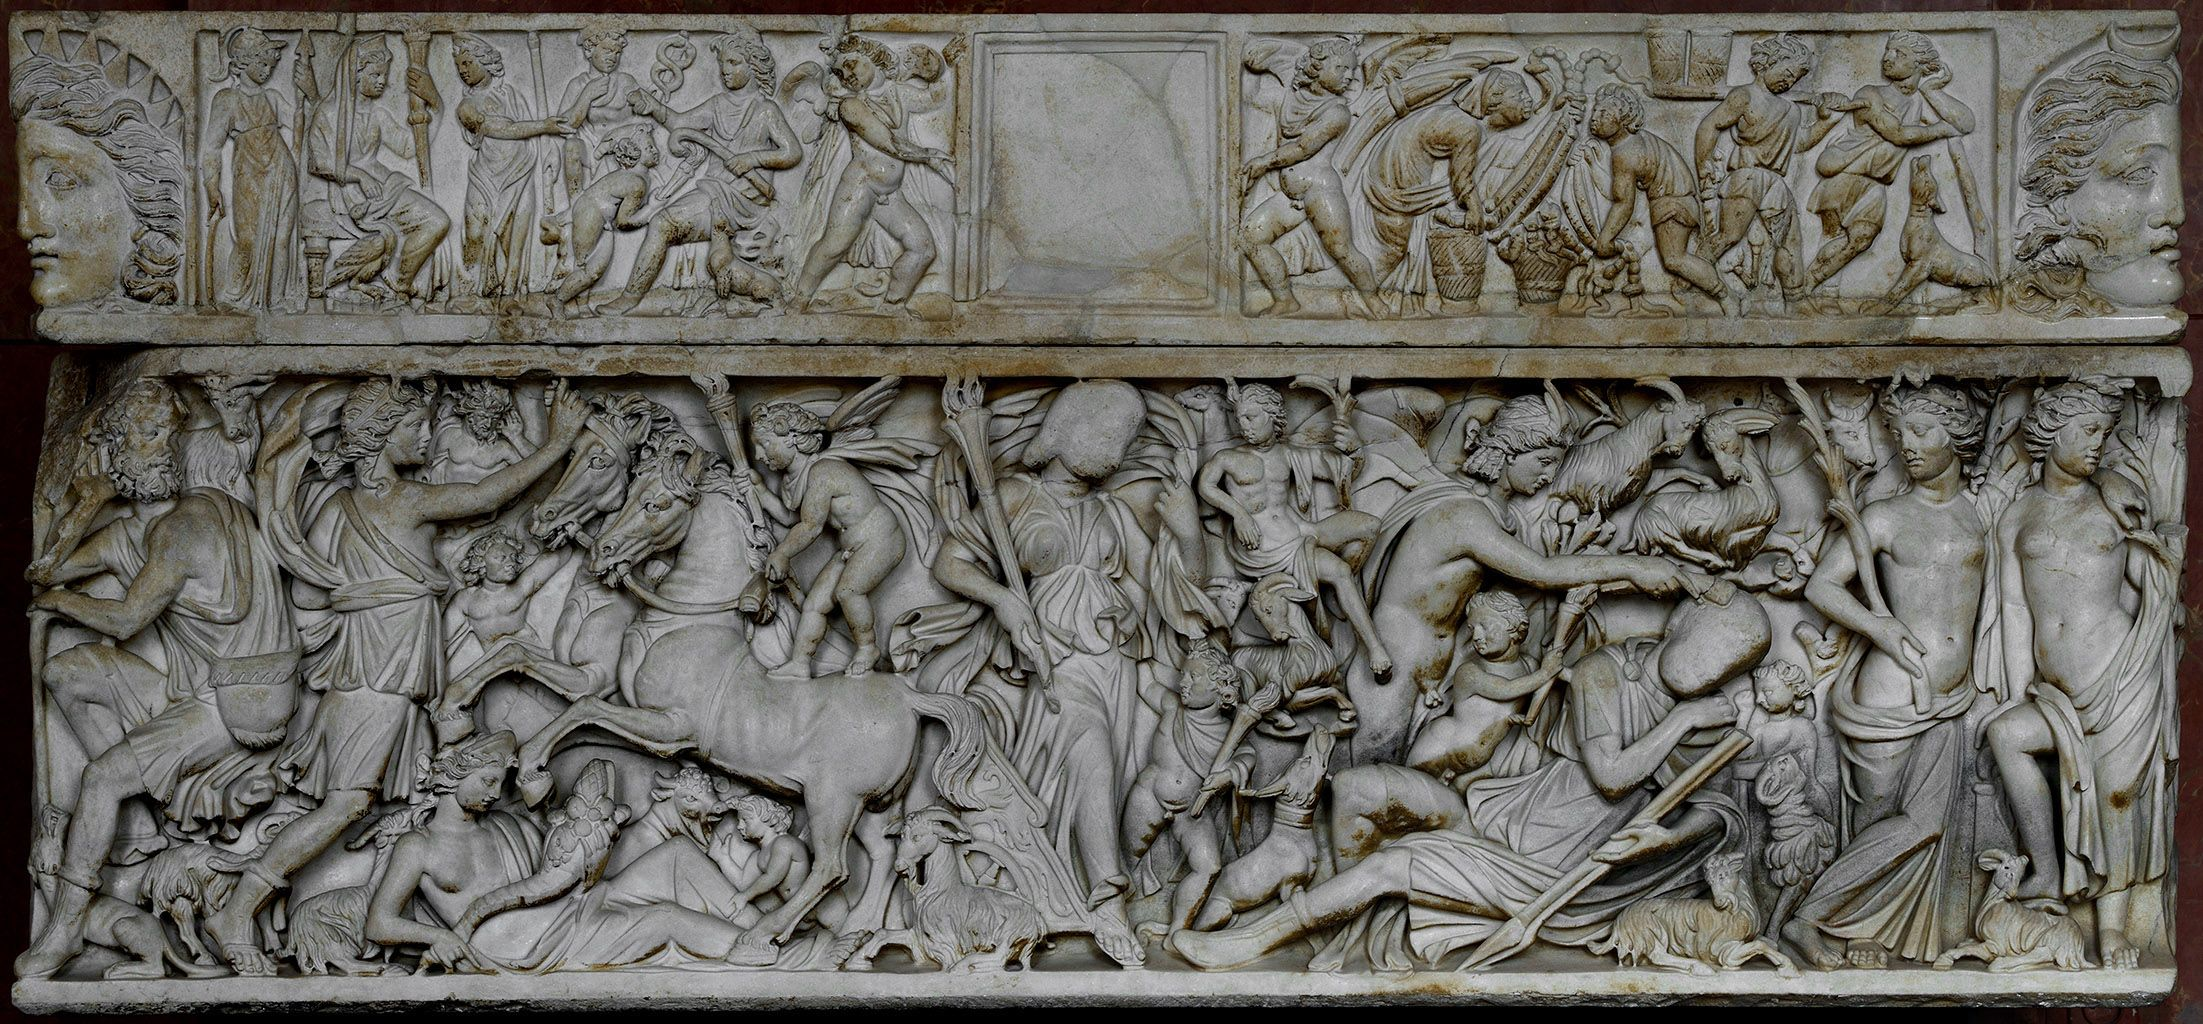 Marble Sarcophagus of Endymion and Selene, early 3rd century, Louvre museum